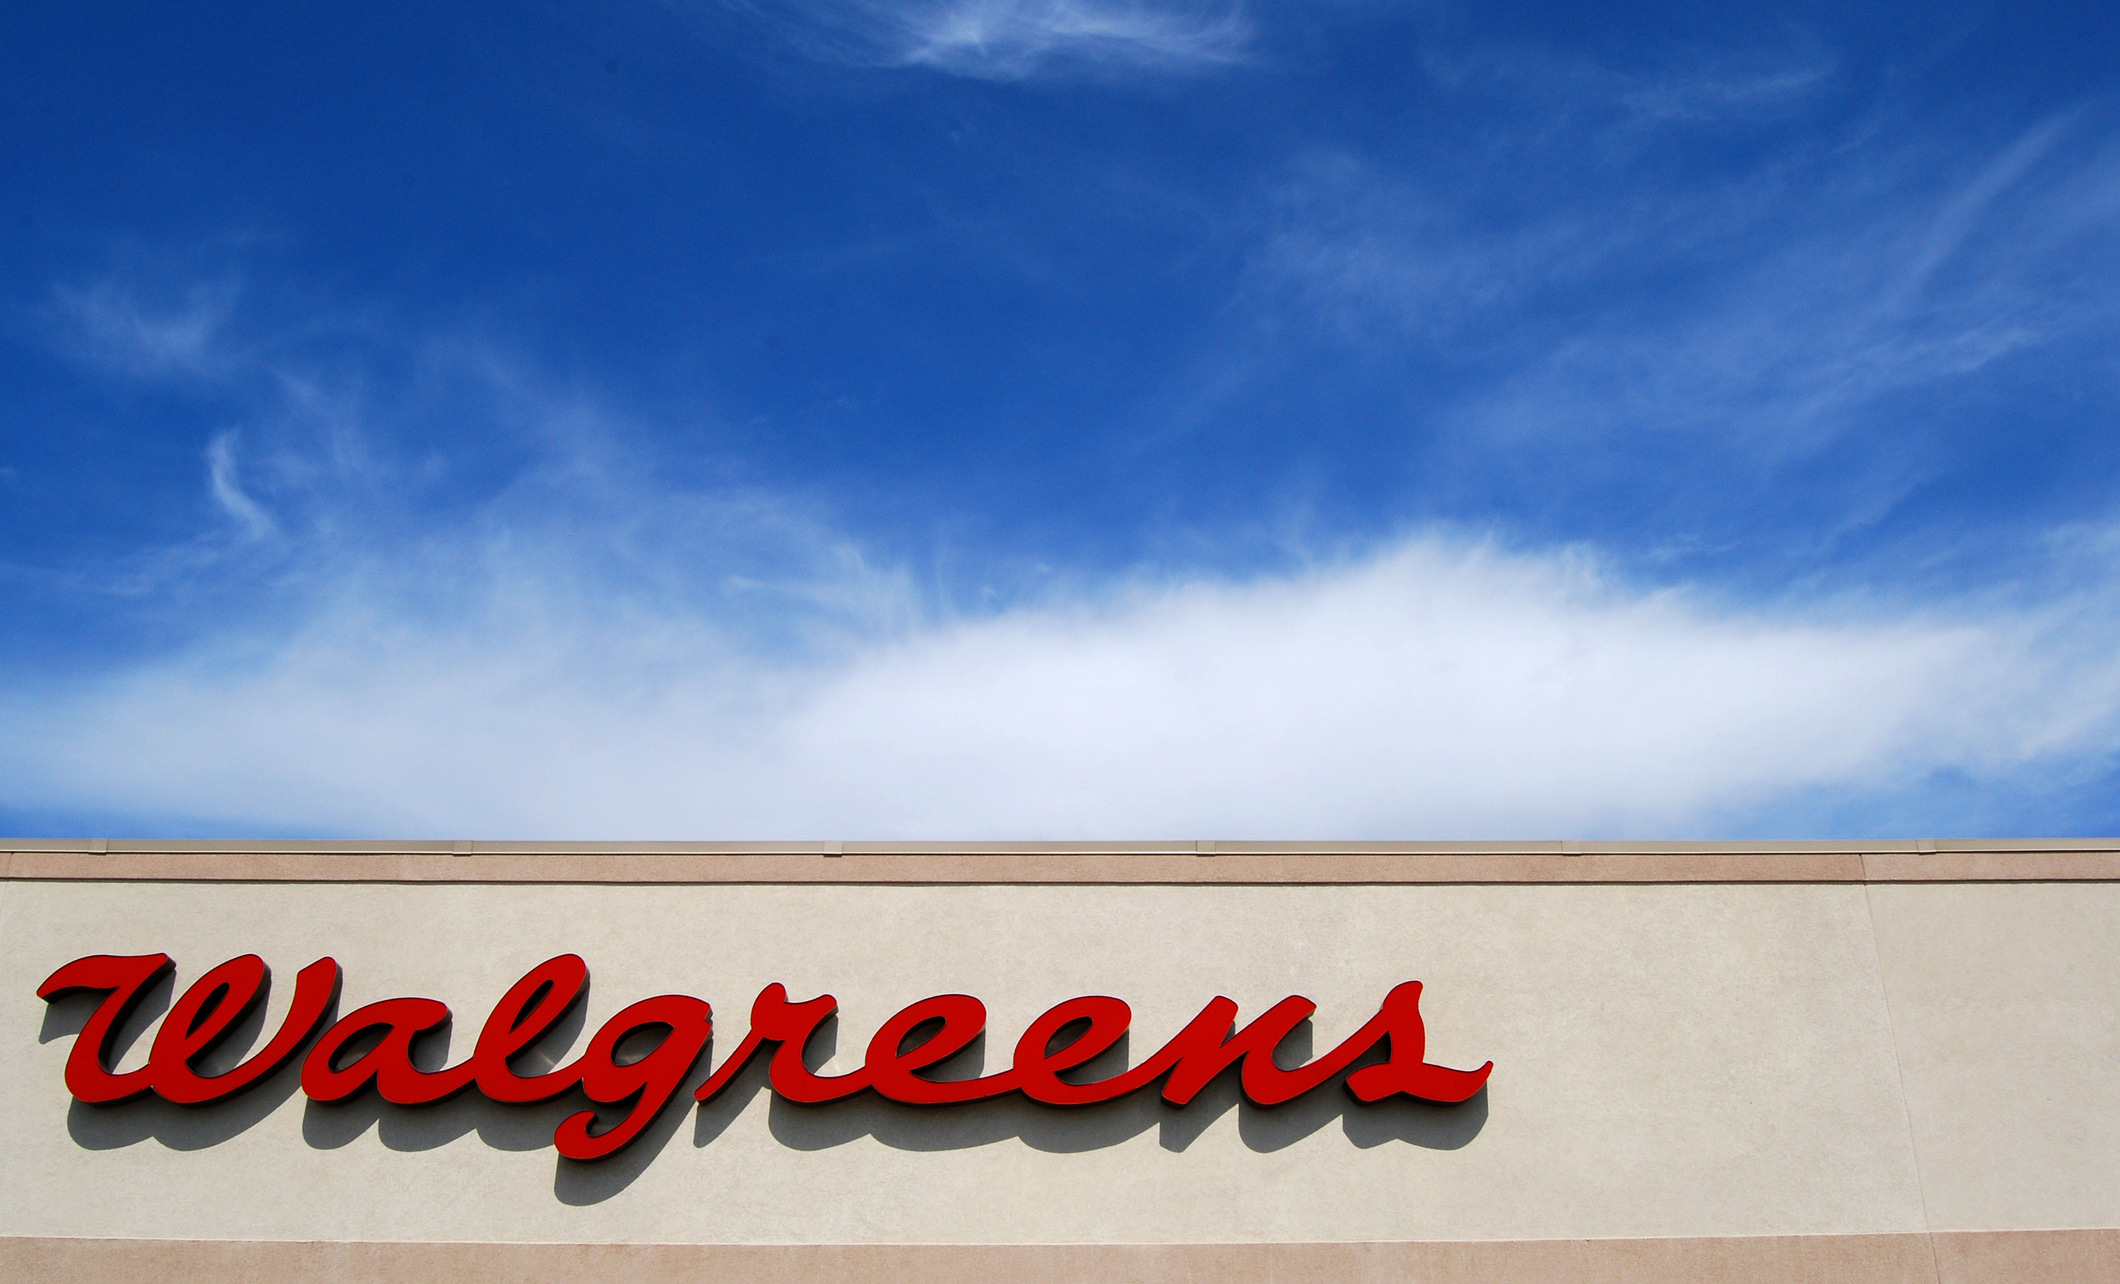 Walgreens sign topped by ablue sky with wispy clouds